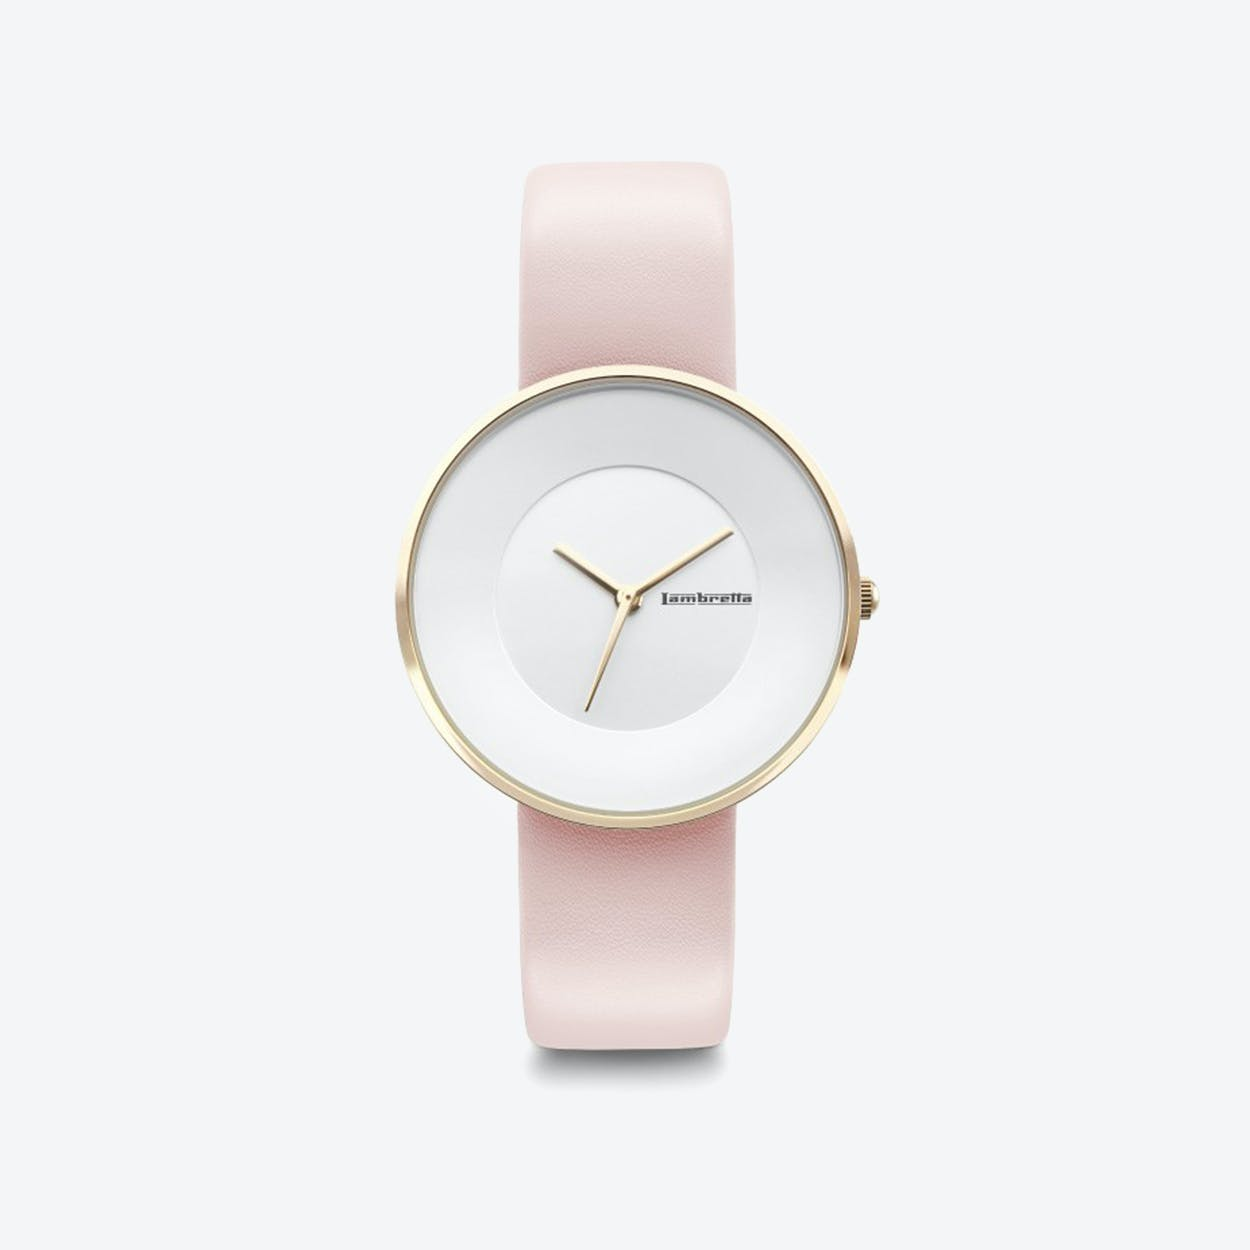 Cielo in Gold with White Face & Pink Leather Strap, 34mm